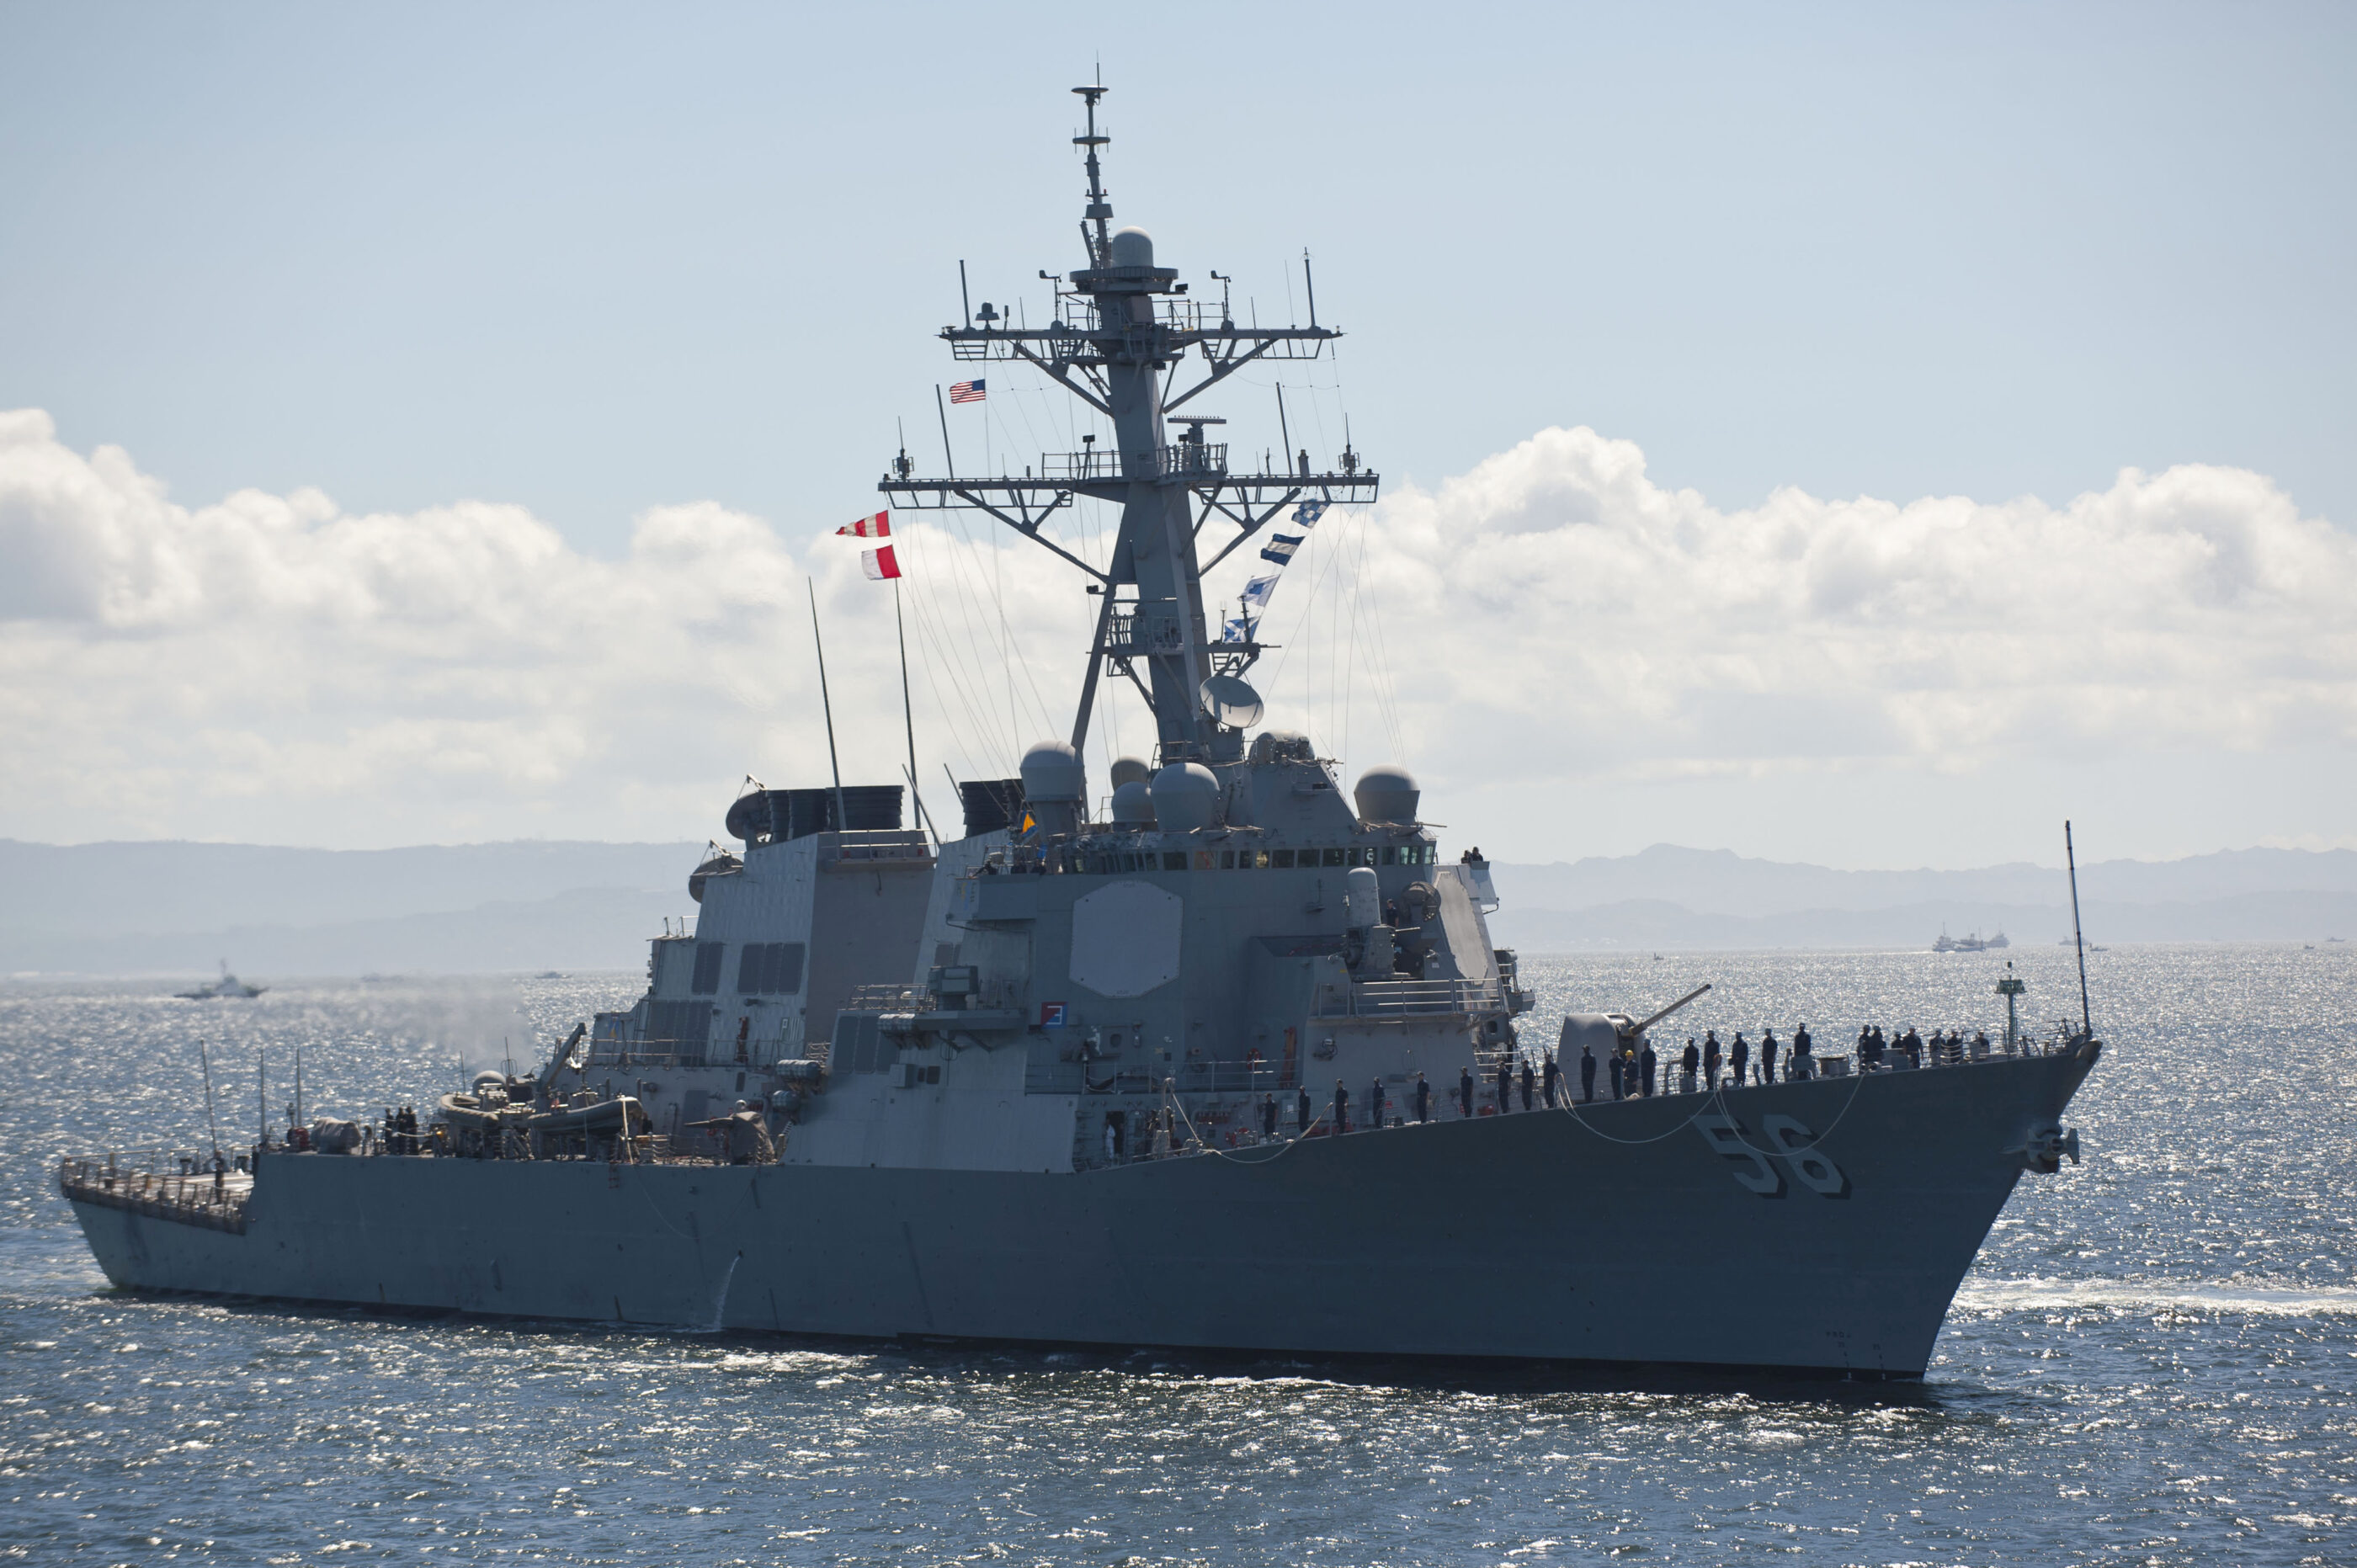 Russian destroyer 'aggressively' approaches U.S. warship in Sea of Japan